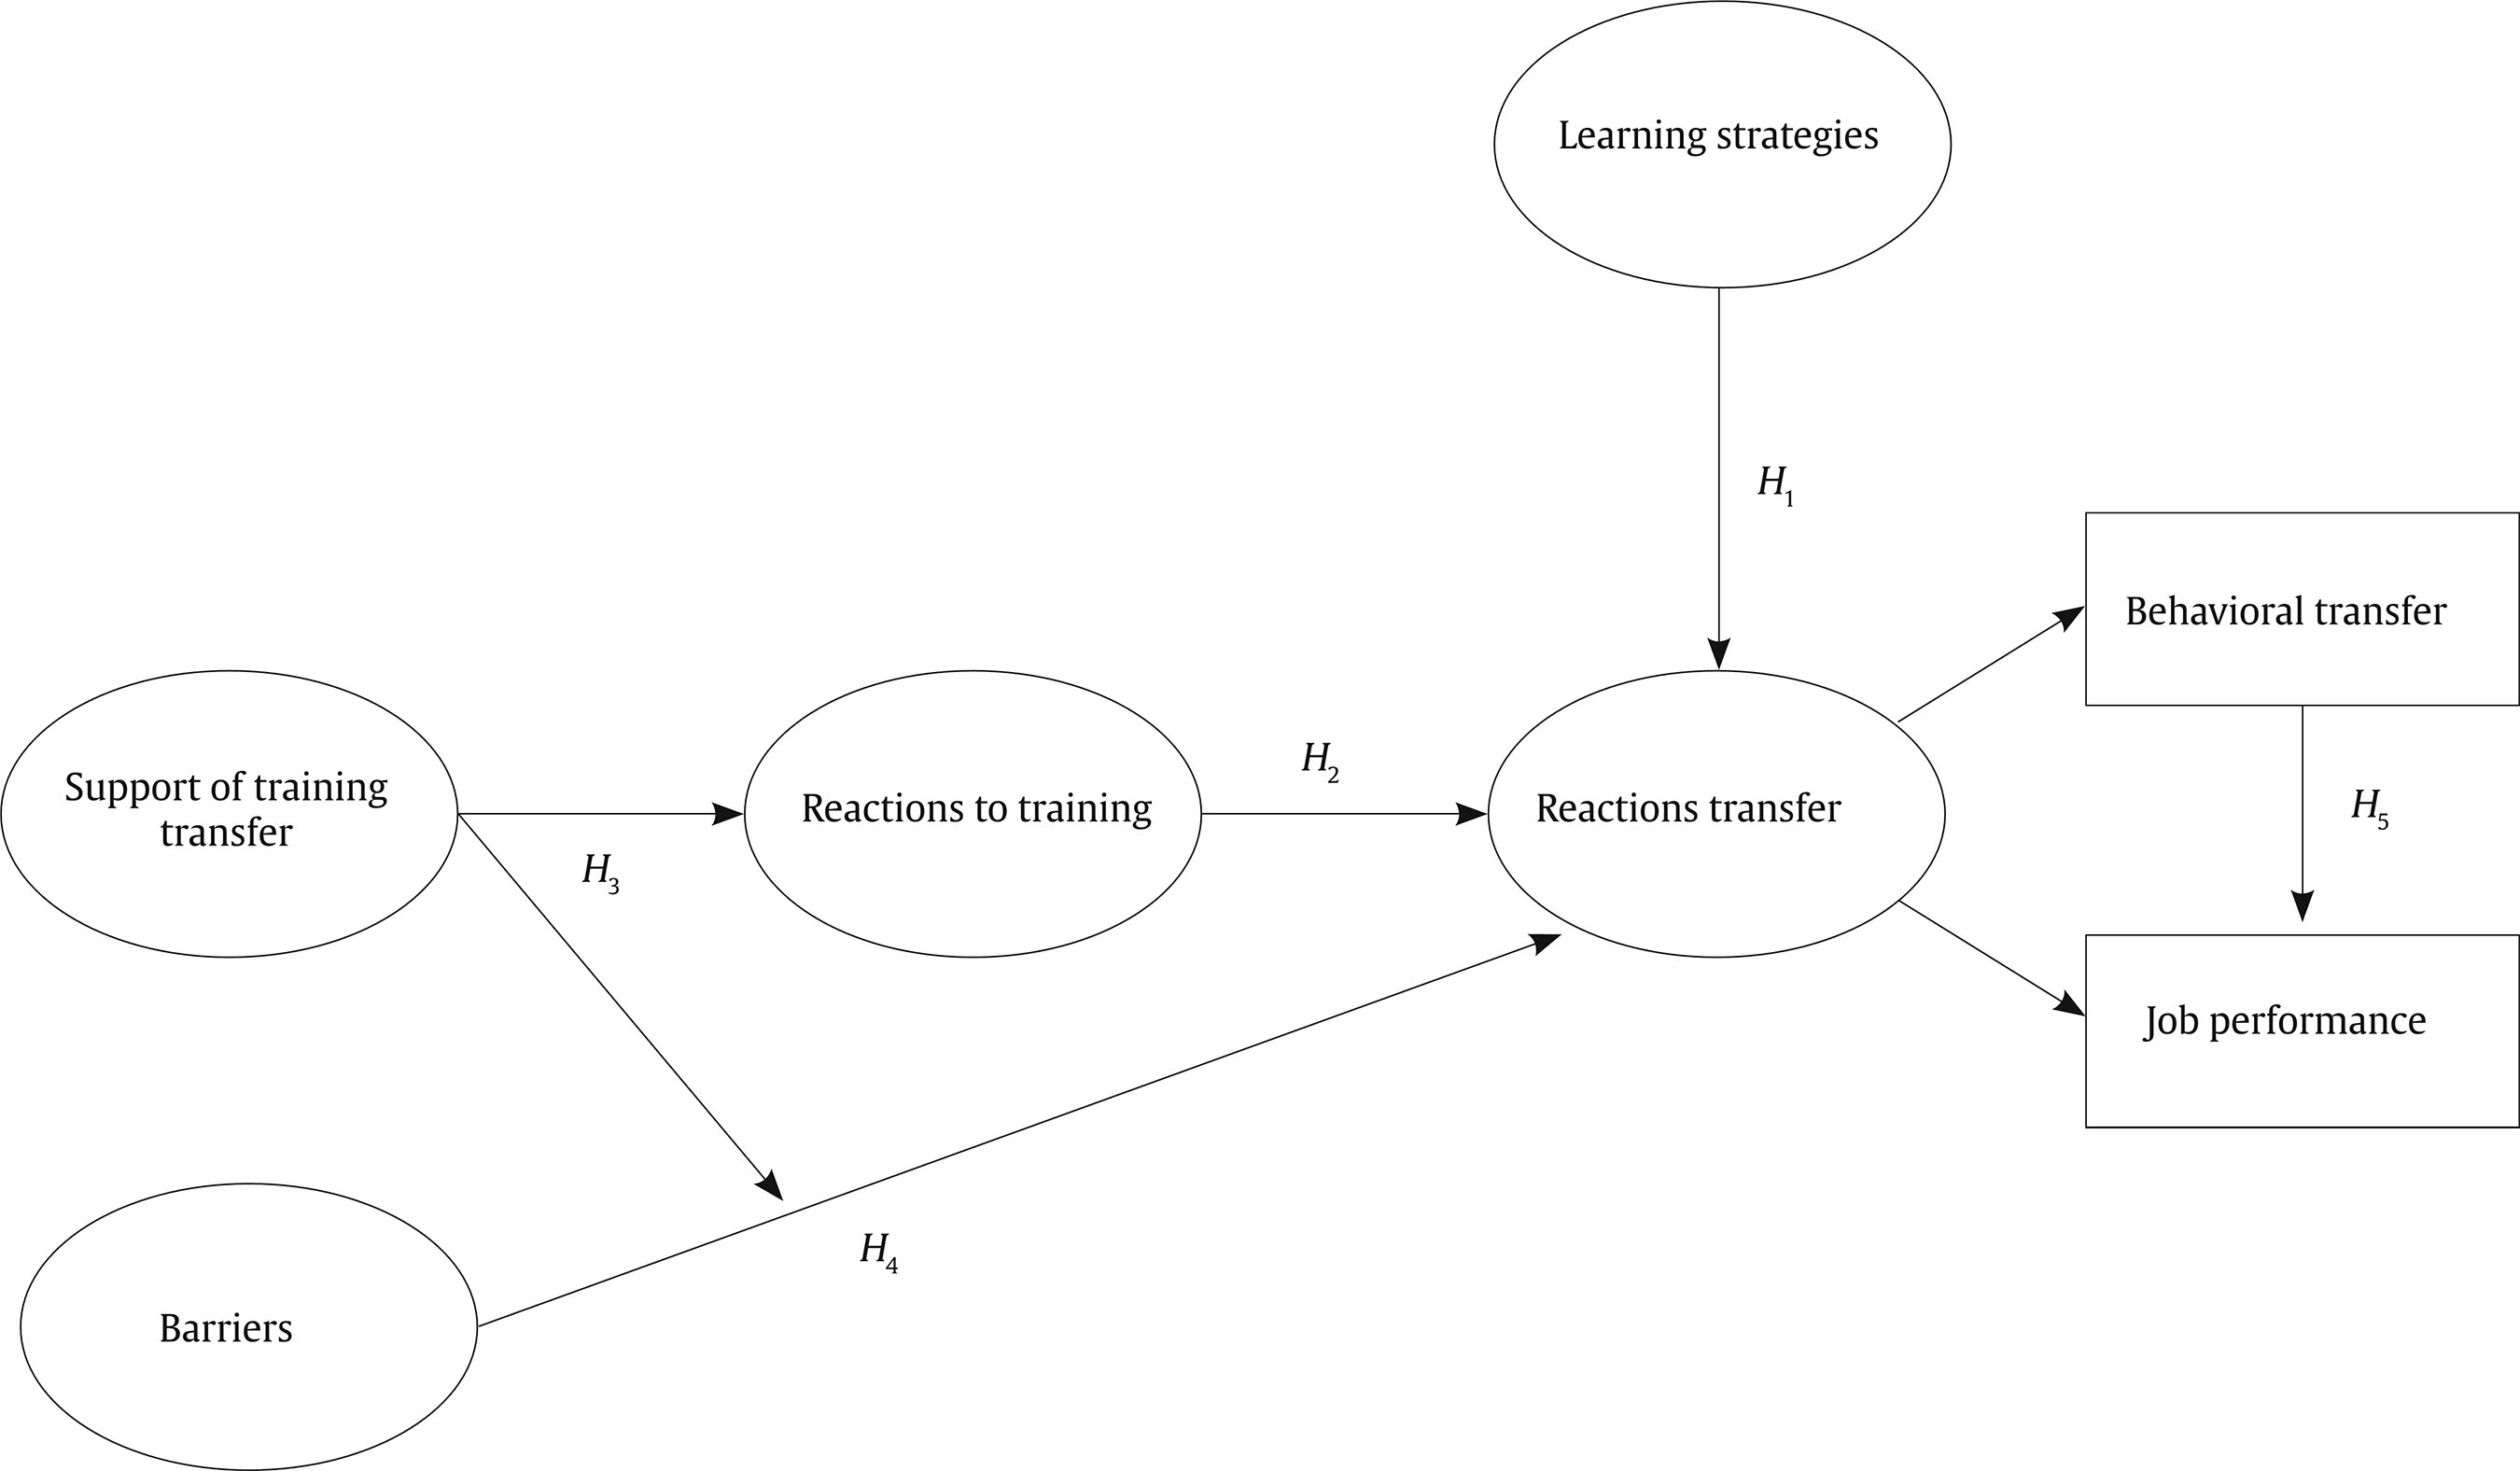 Impact of Online Training on Behavioral Transfer and Job